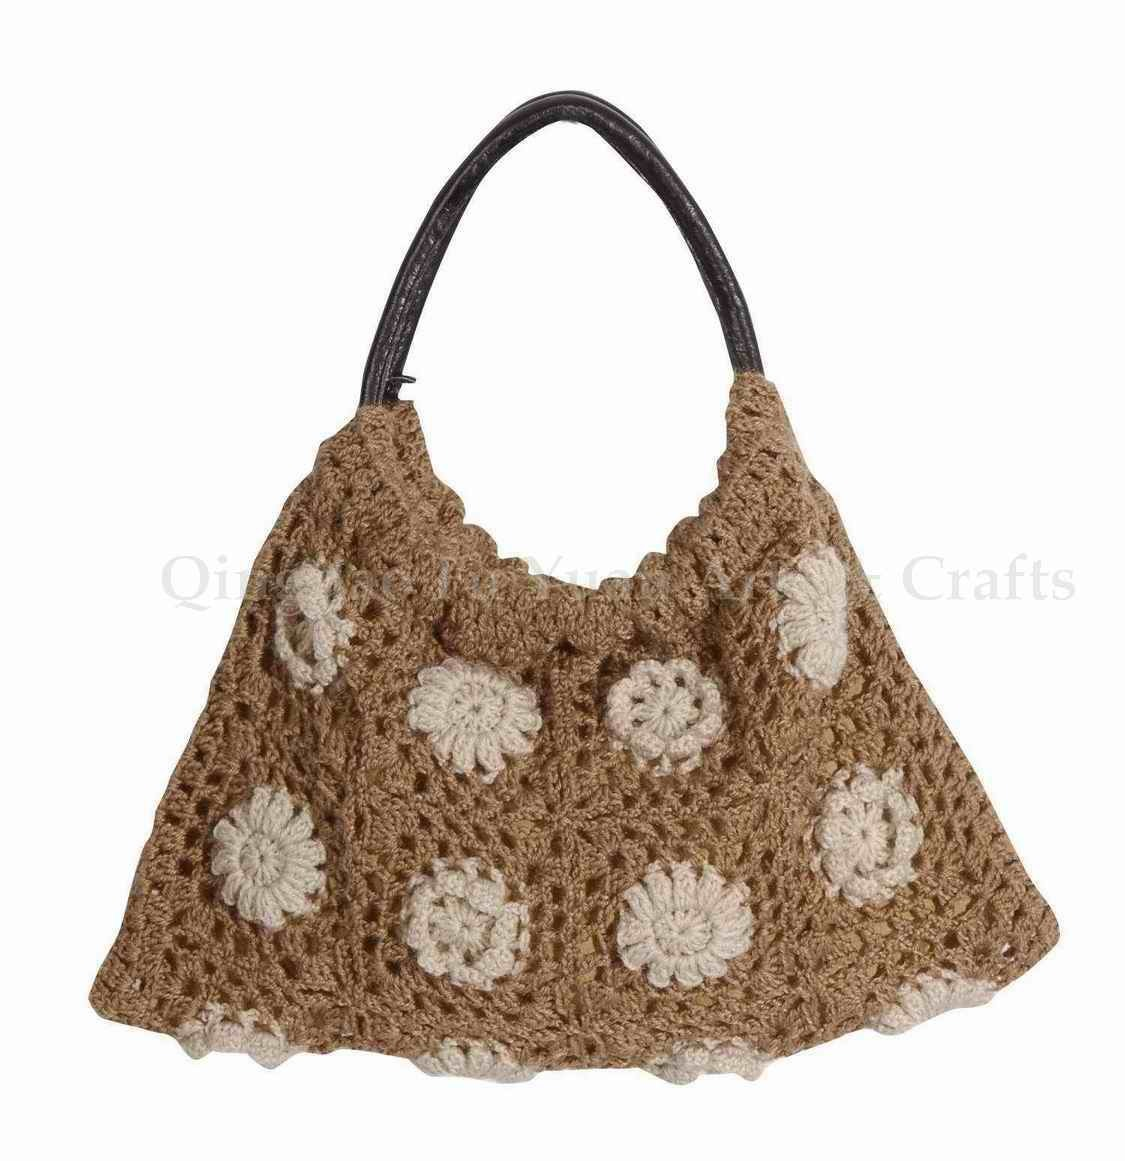 Crochet Purse : China Crochet Bag (FY8020) - China Knitting Bag, Knitted Bag